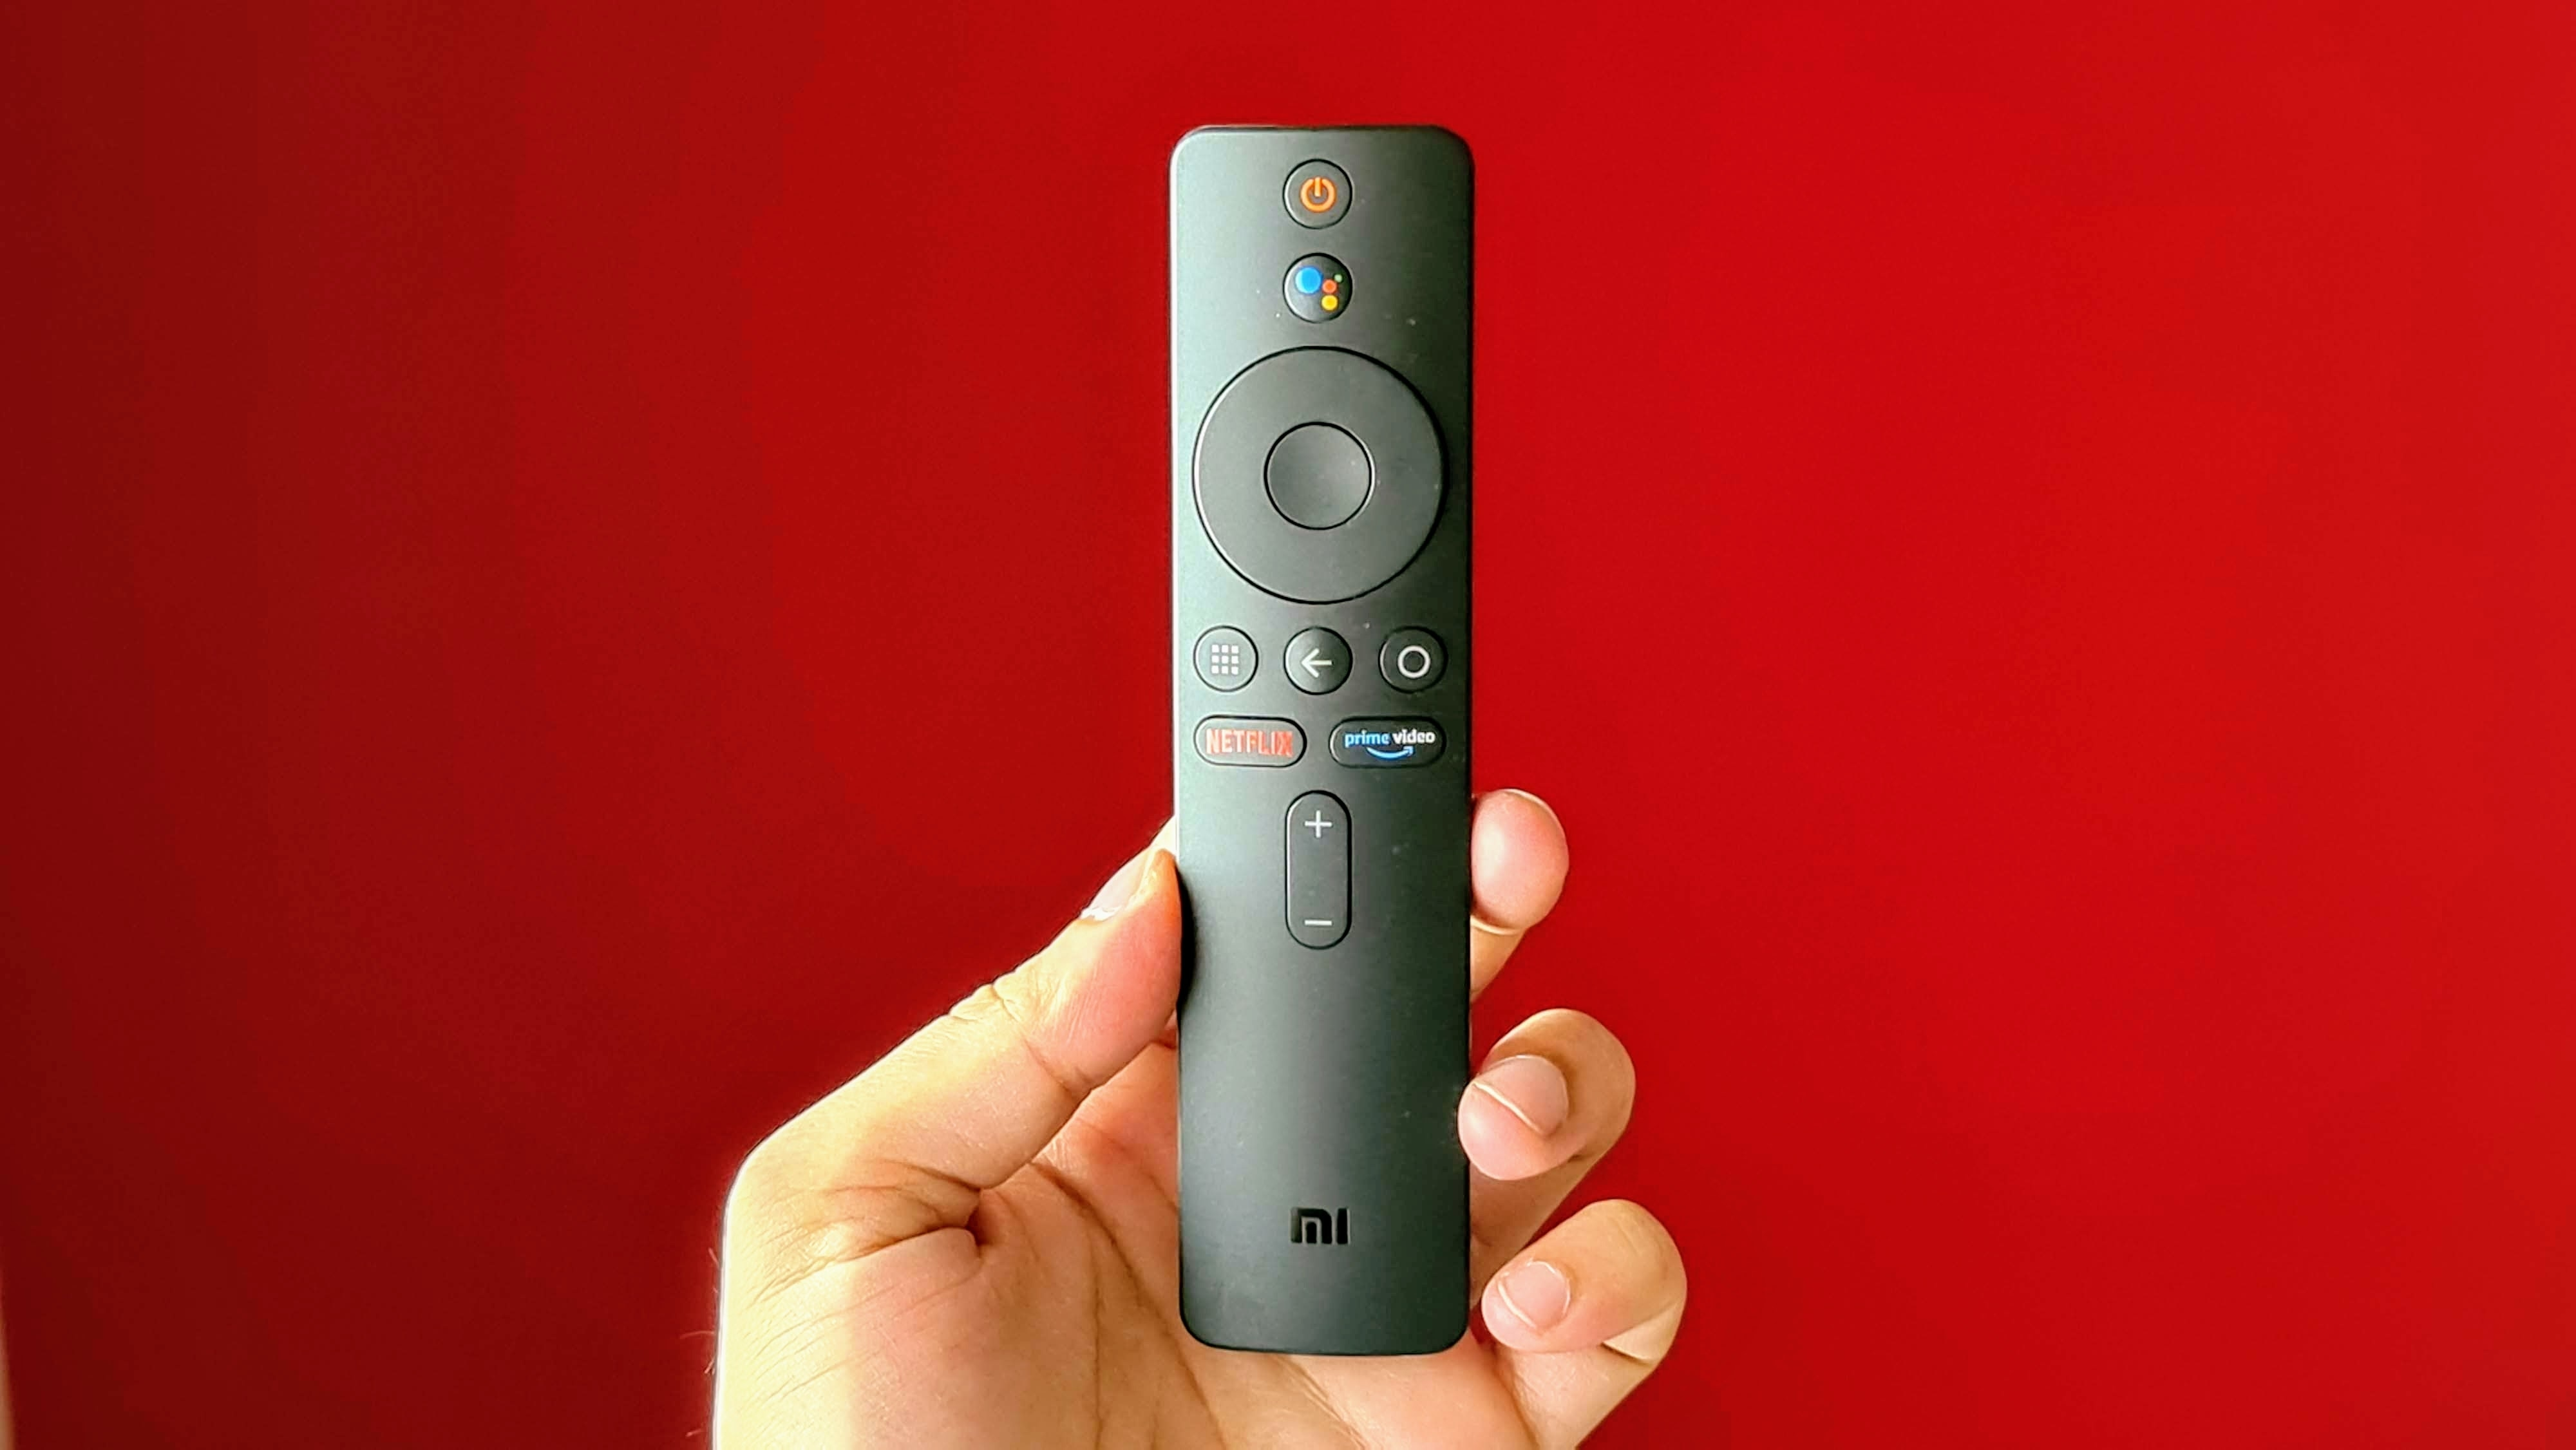 Mi Infrared Remote Control comes inside the box.